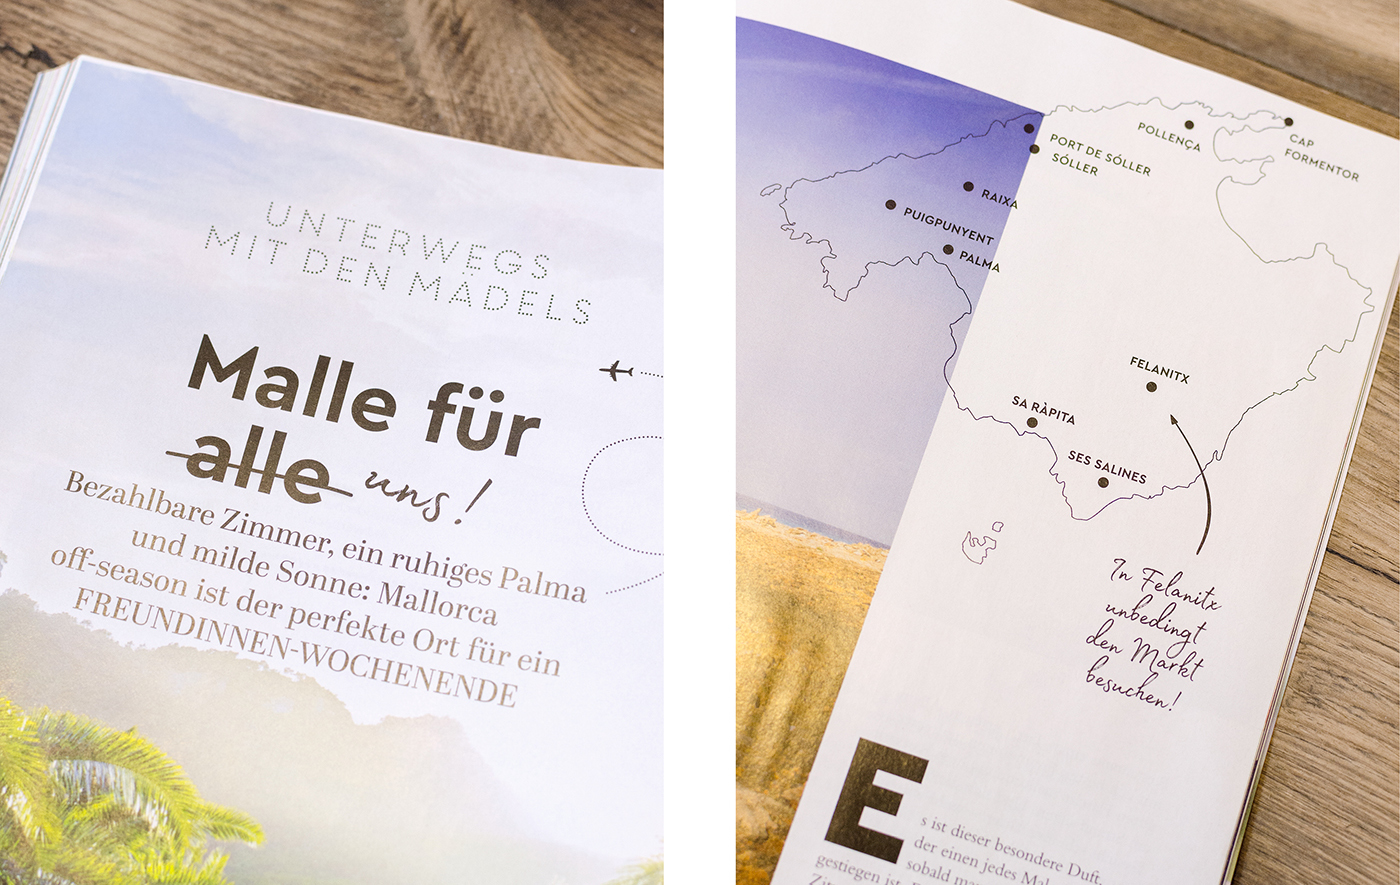 Type Mates In Use Guido Maria Kretschmer Fashion Magazine Gruner Jahr 13 Cera Pro Cera Compact